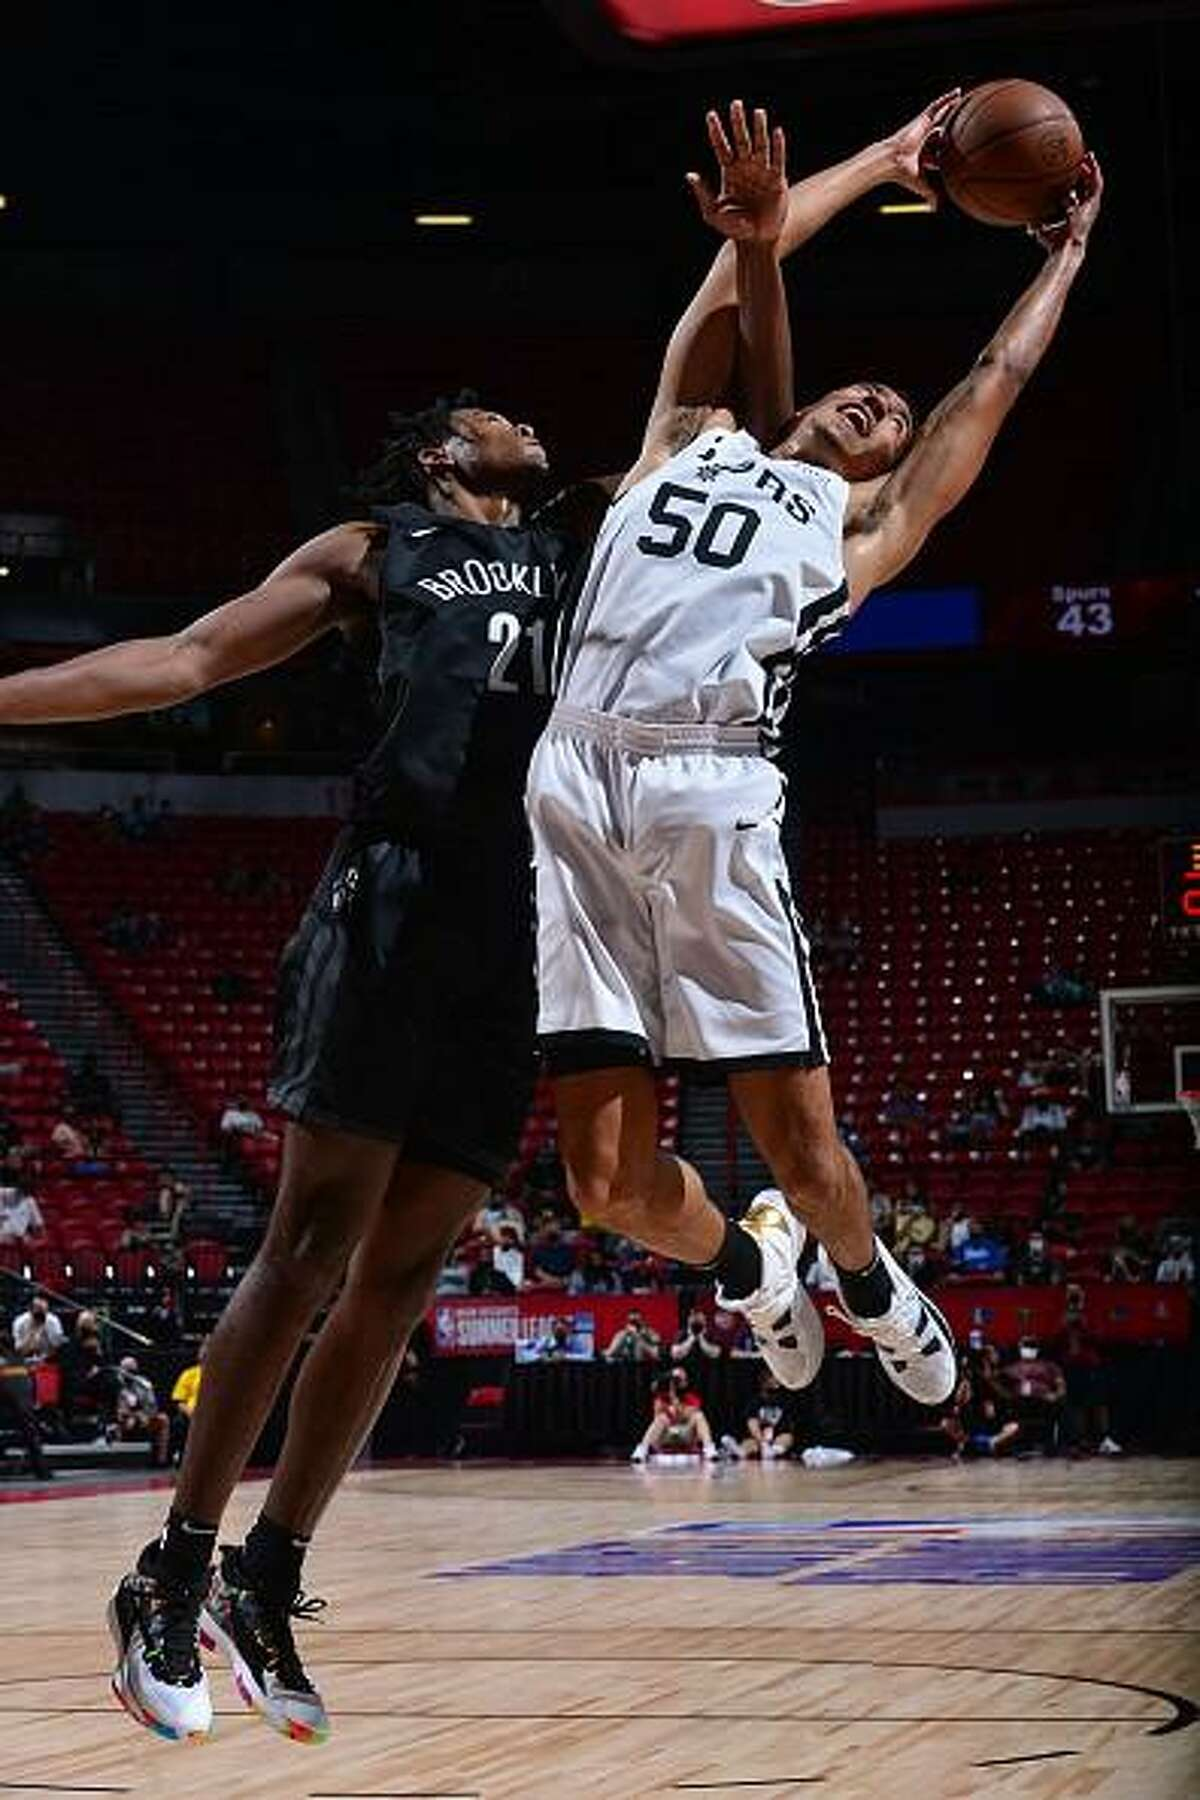 Justin Robinson #50 of the San Antonio Spurs rebounds the ball against the Brooklyn Nets during the 2021 Las Vegas Summer League on August 15, 2021 at the Thomas & Mack Center in Las Vegas, Nevada.